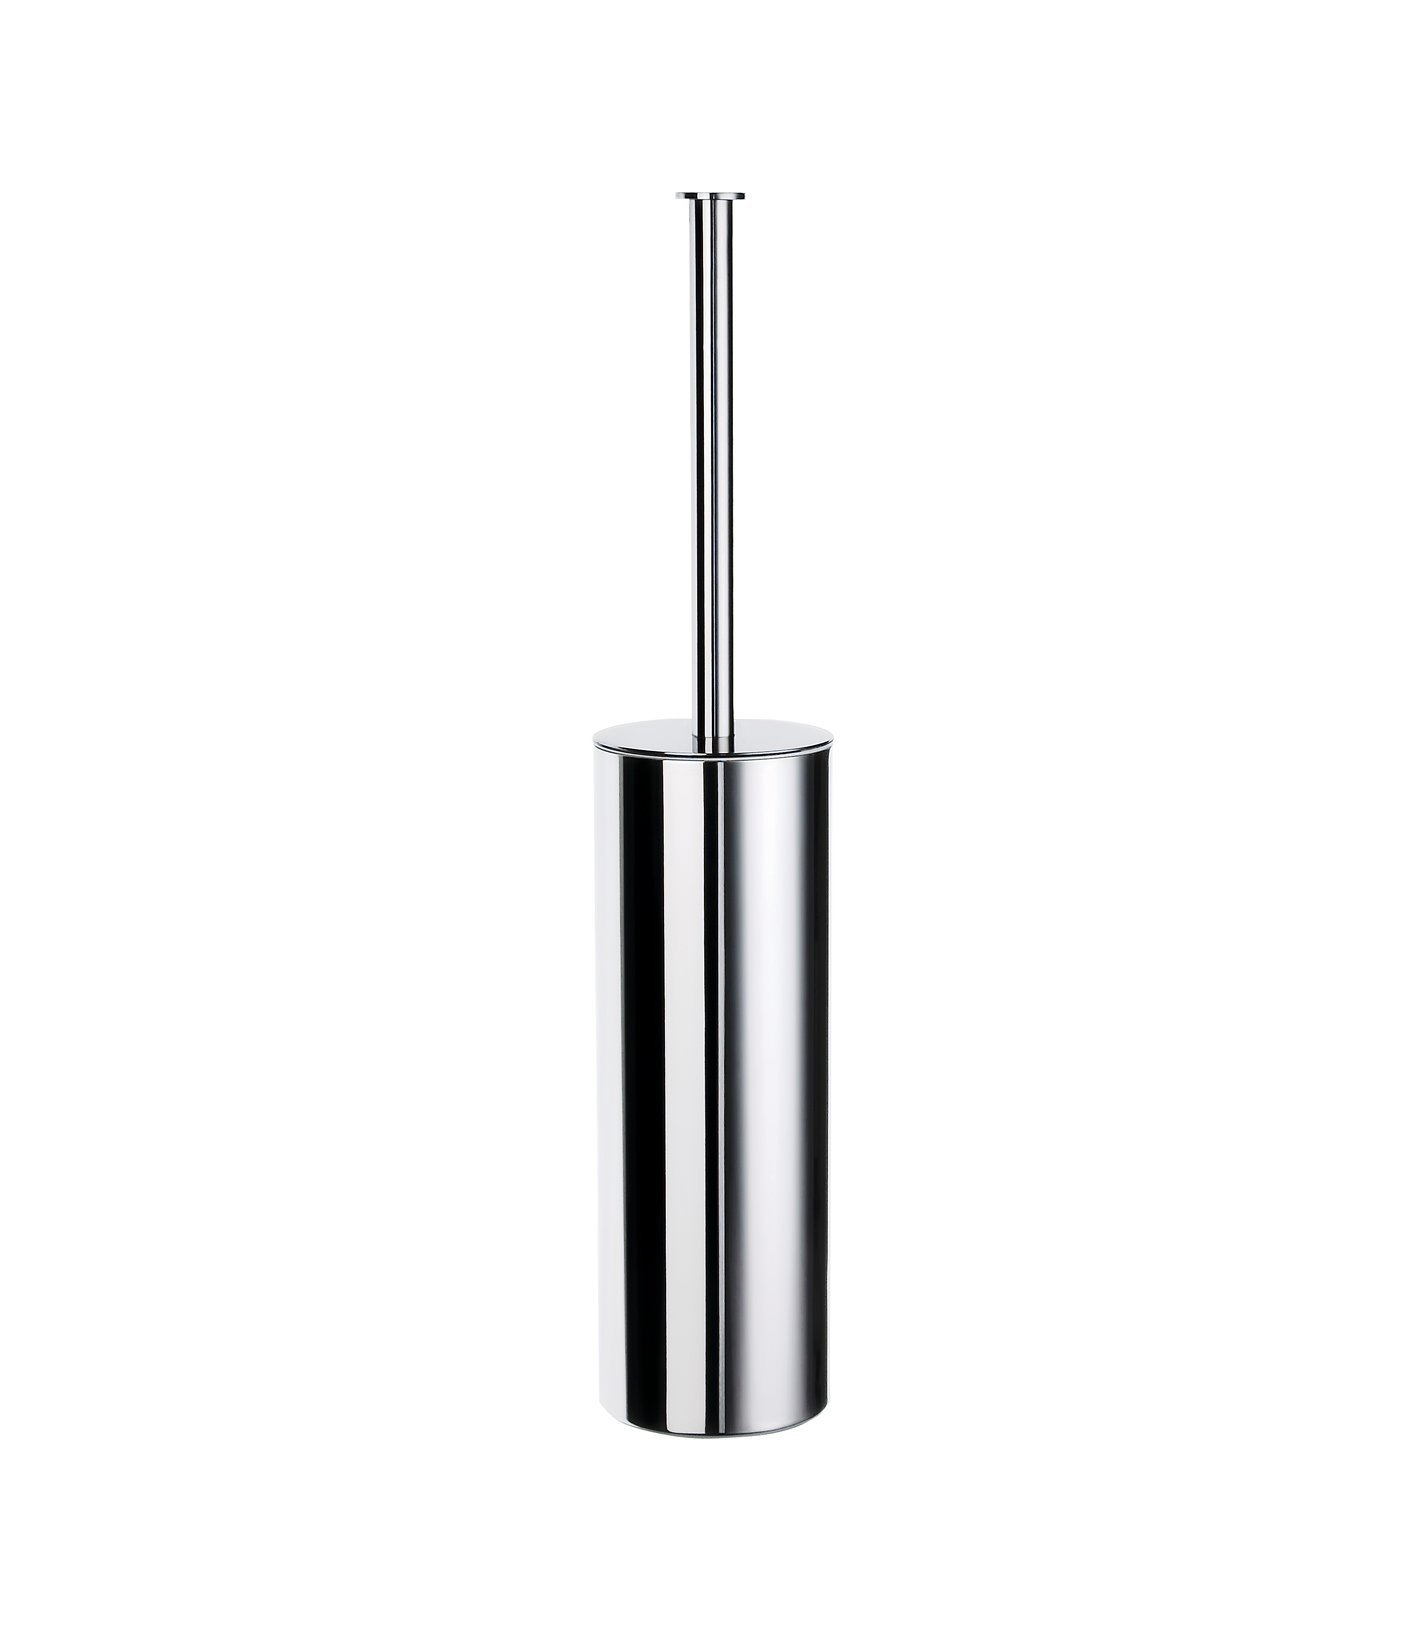 Smedbo SME_FK605 Free Standing Toilet Brush, Stainless Steel Polished